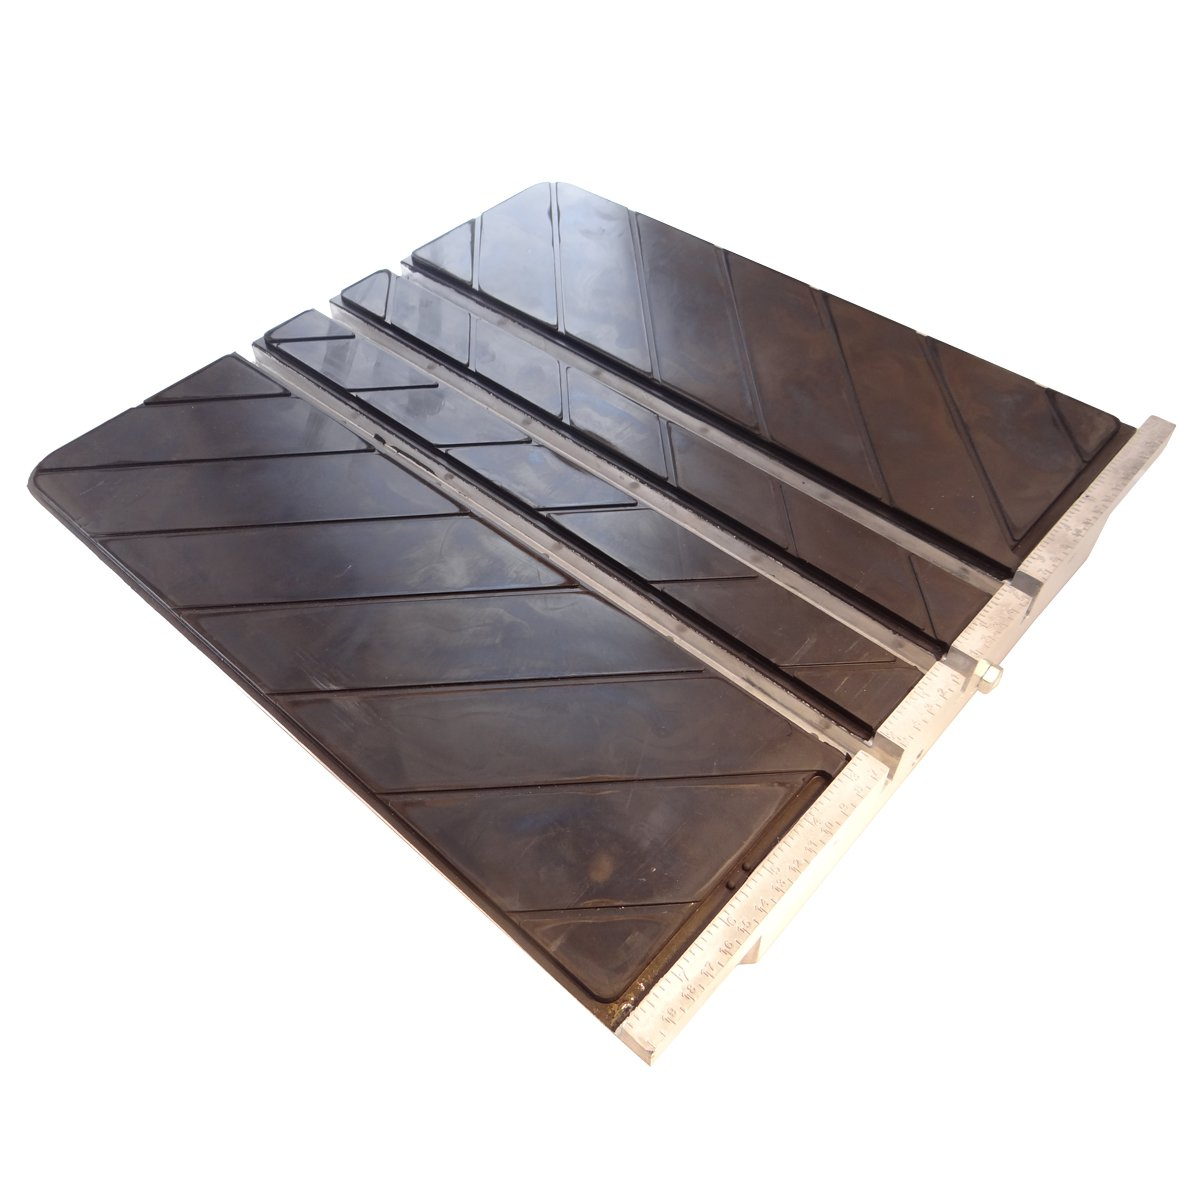 Carriage Tray for Husqvarna, Target, Felker Tile Saws